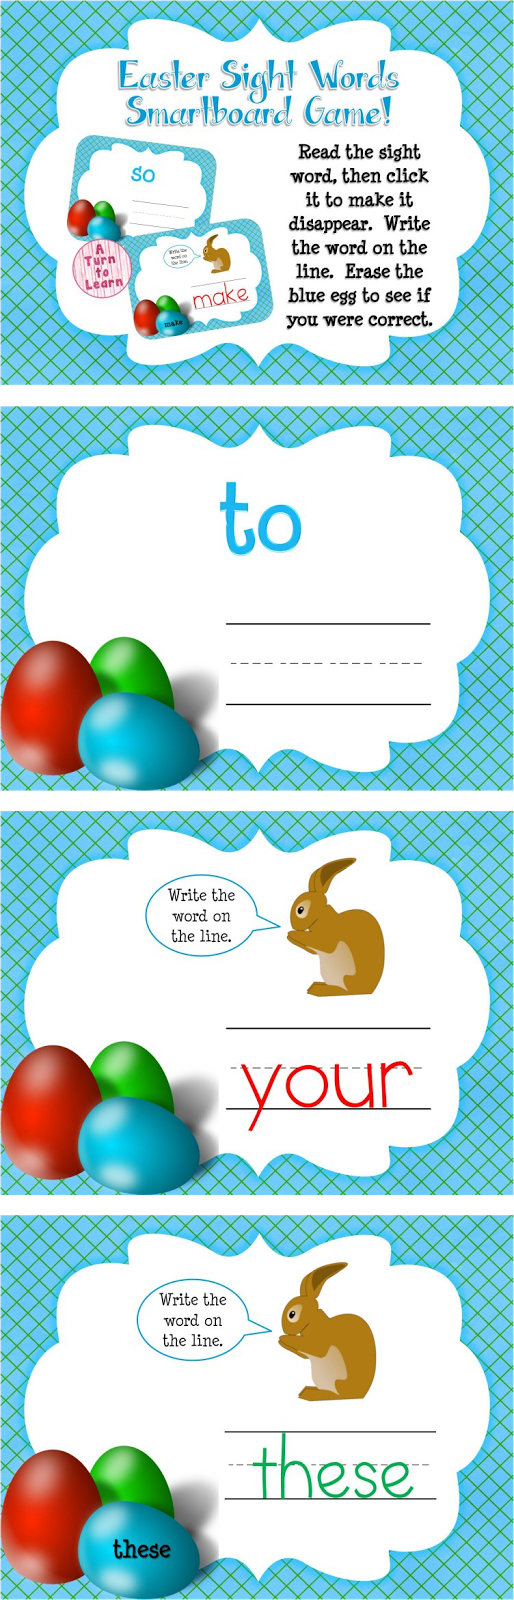 http://www.teacherspayteachers.com/Product/Easter-Sight-Words-Smartboard-or-Promethean-Board-Game-Frys-First-100-Words-1180458